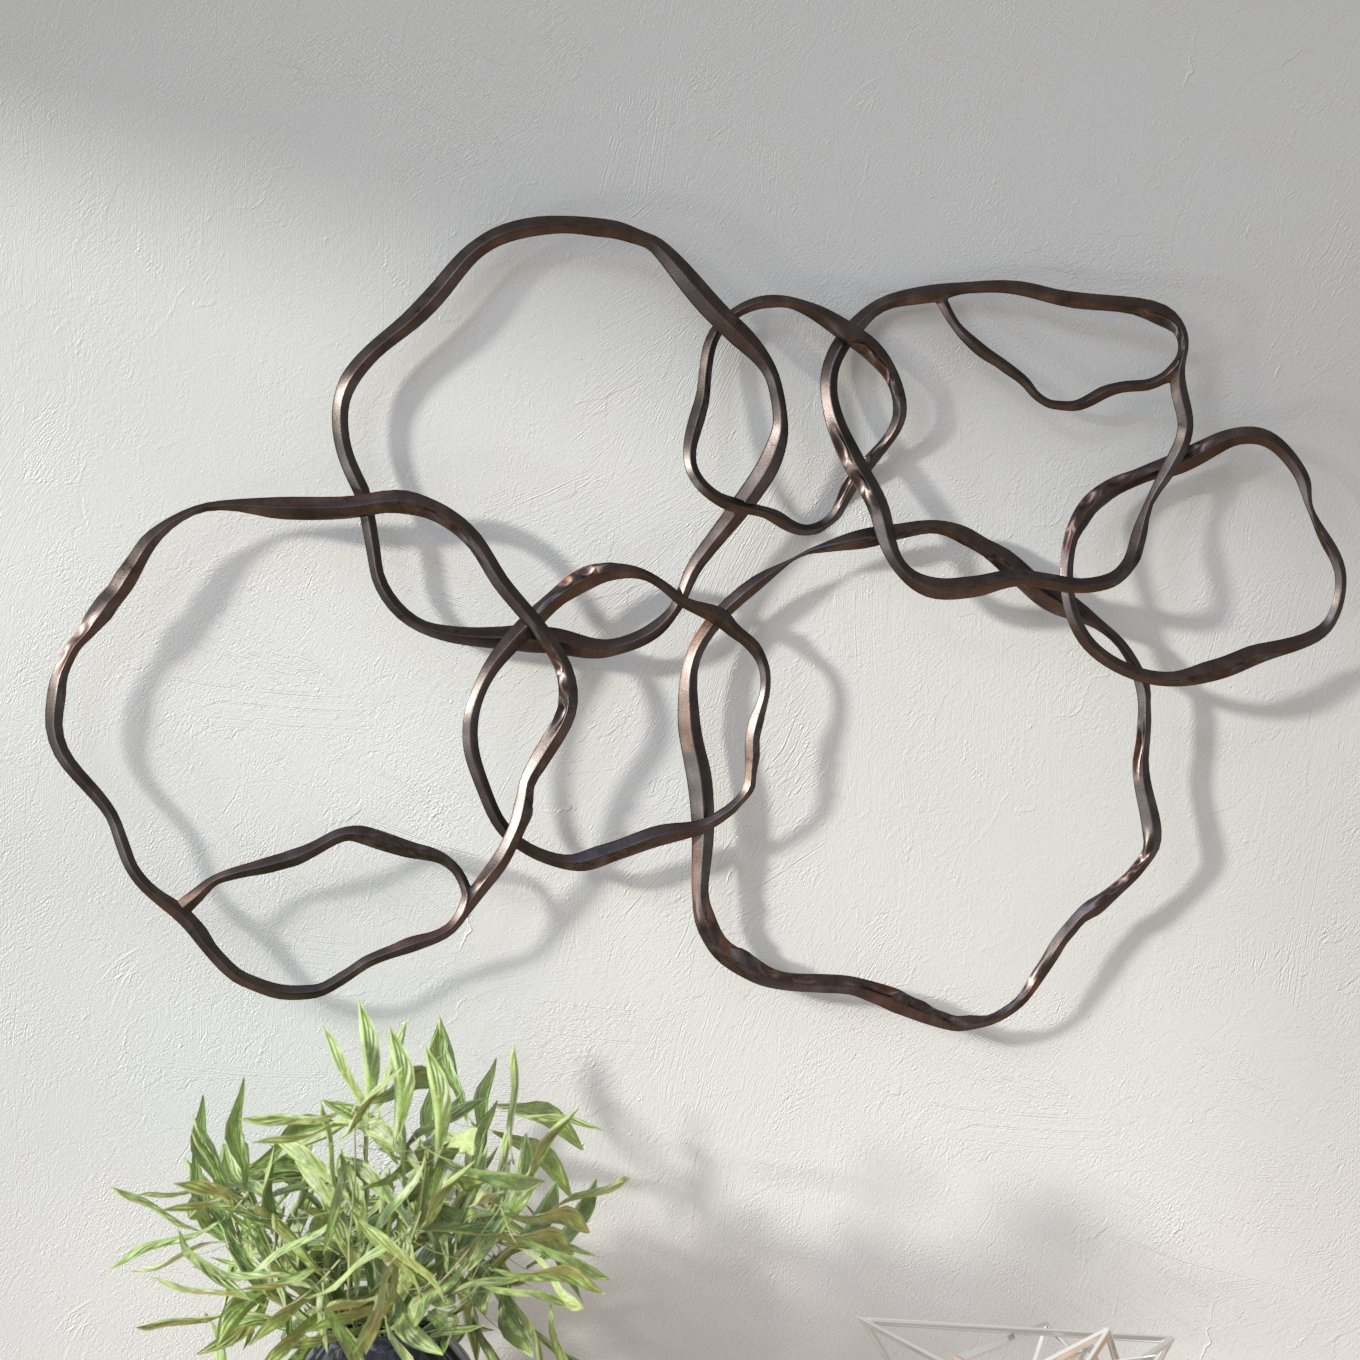 Wrought Studio Rings Wall Décor & Reviews | Wayfair Throughout Rings Wall Decor By Wrought Studio (View 6 of 30)